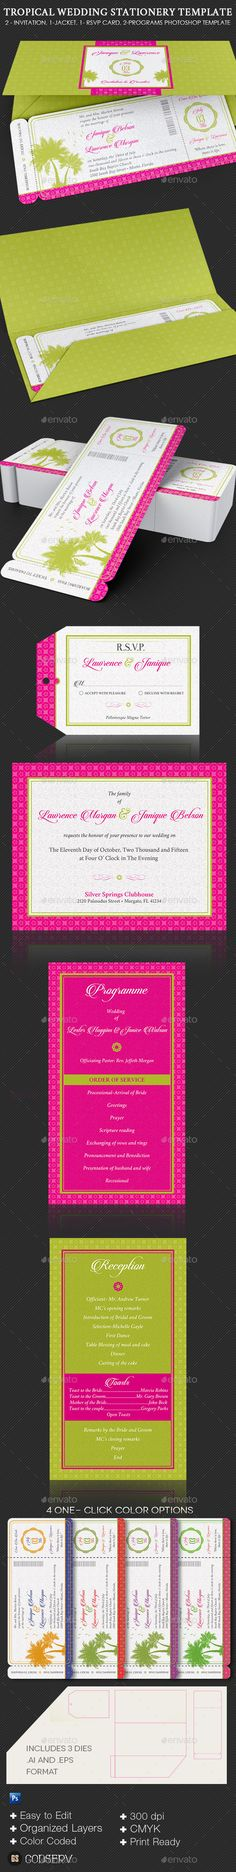 Tropical Wedding Stationery Template #design Download: http://graphicriver.net/item/tropical-wedding-stationery-template-set/12146728?ref=ksioks